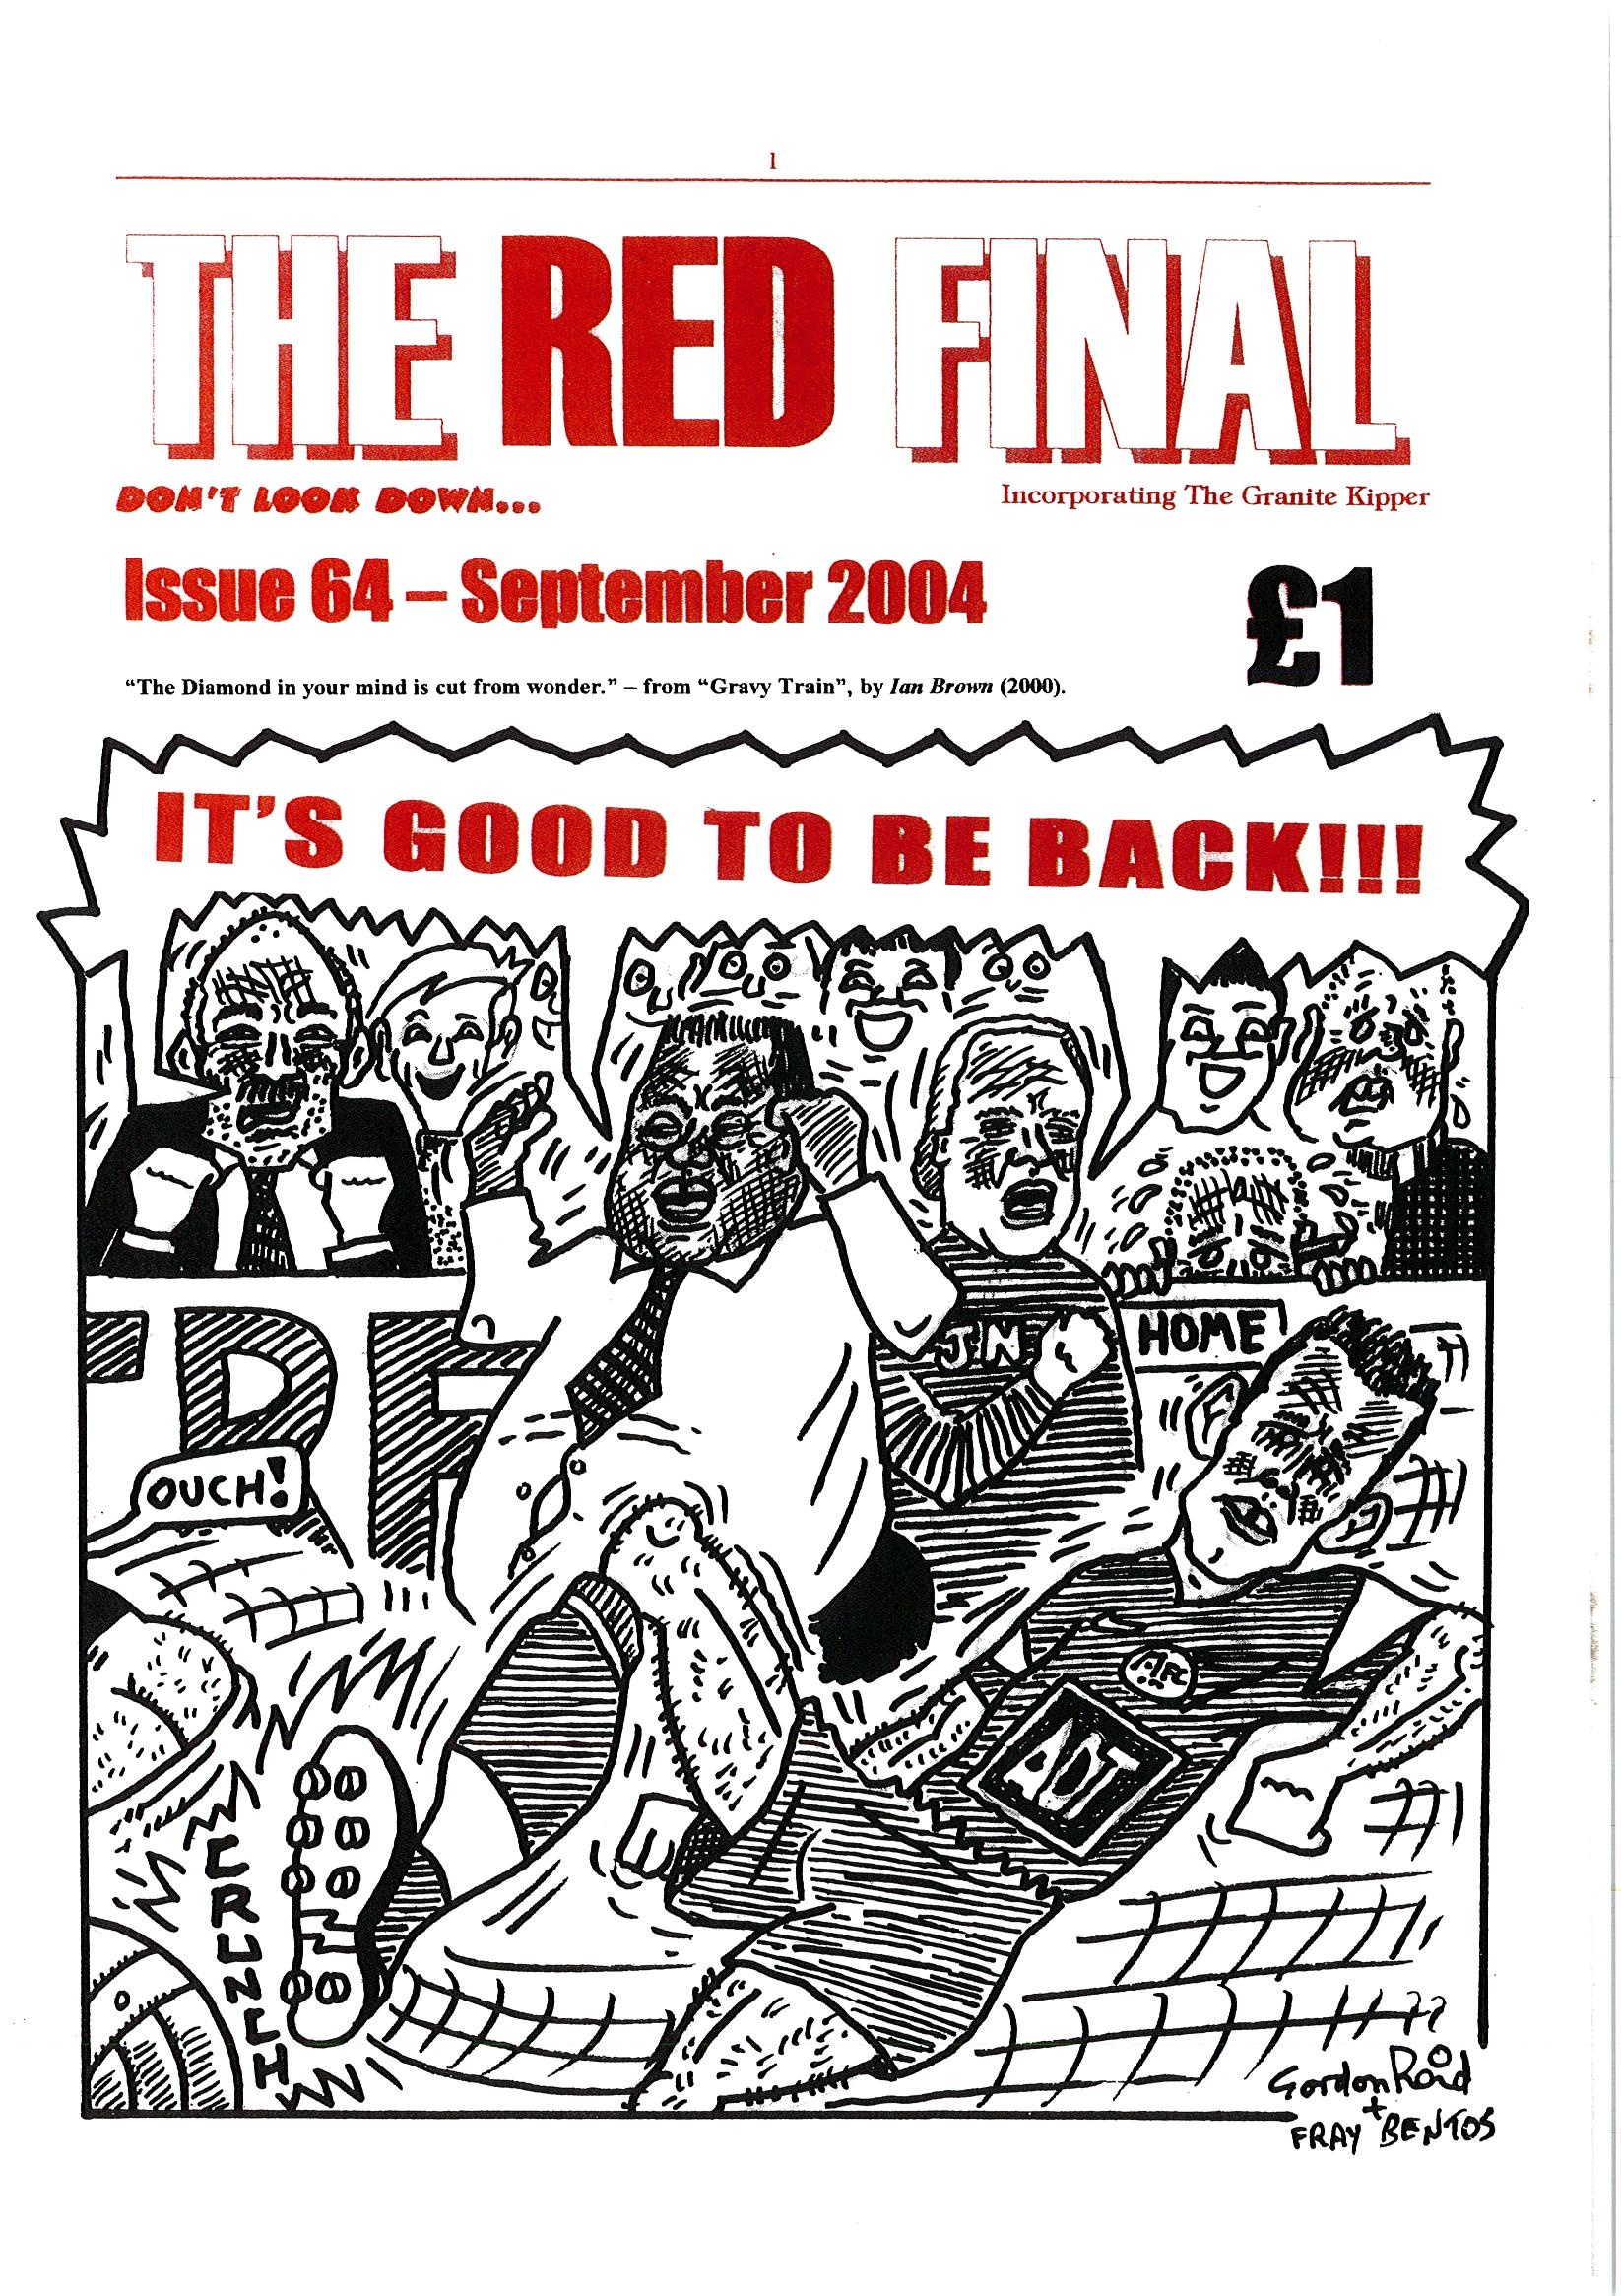 The Red Final, Issue 64